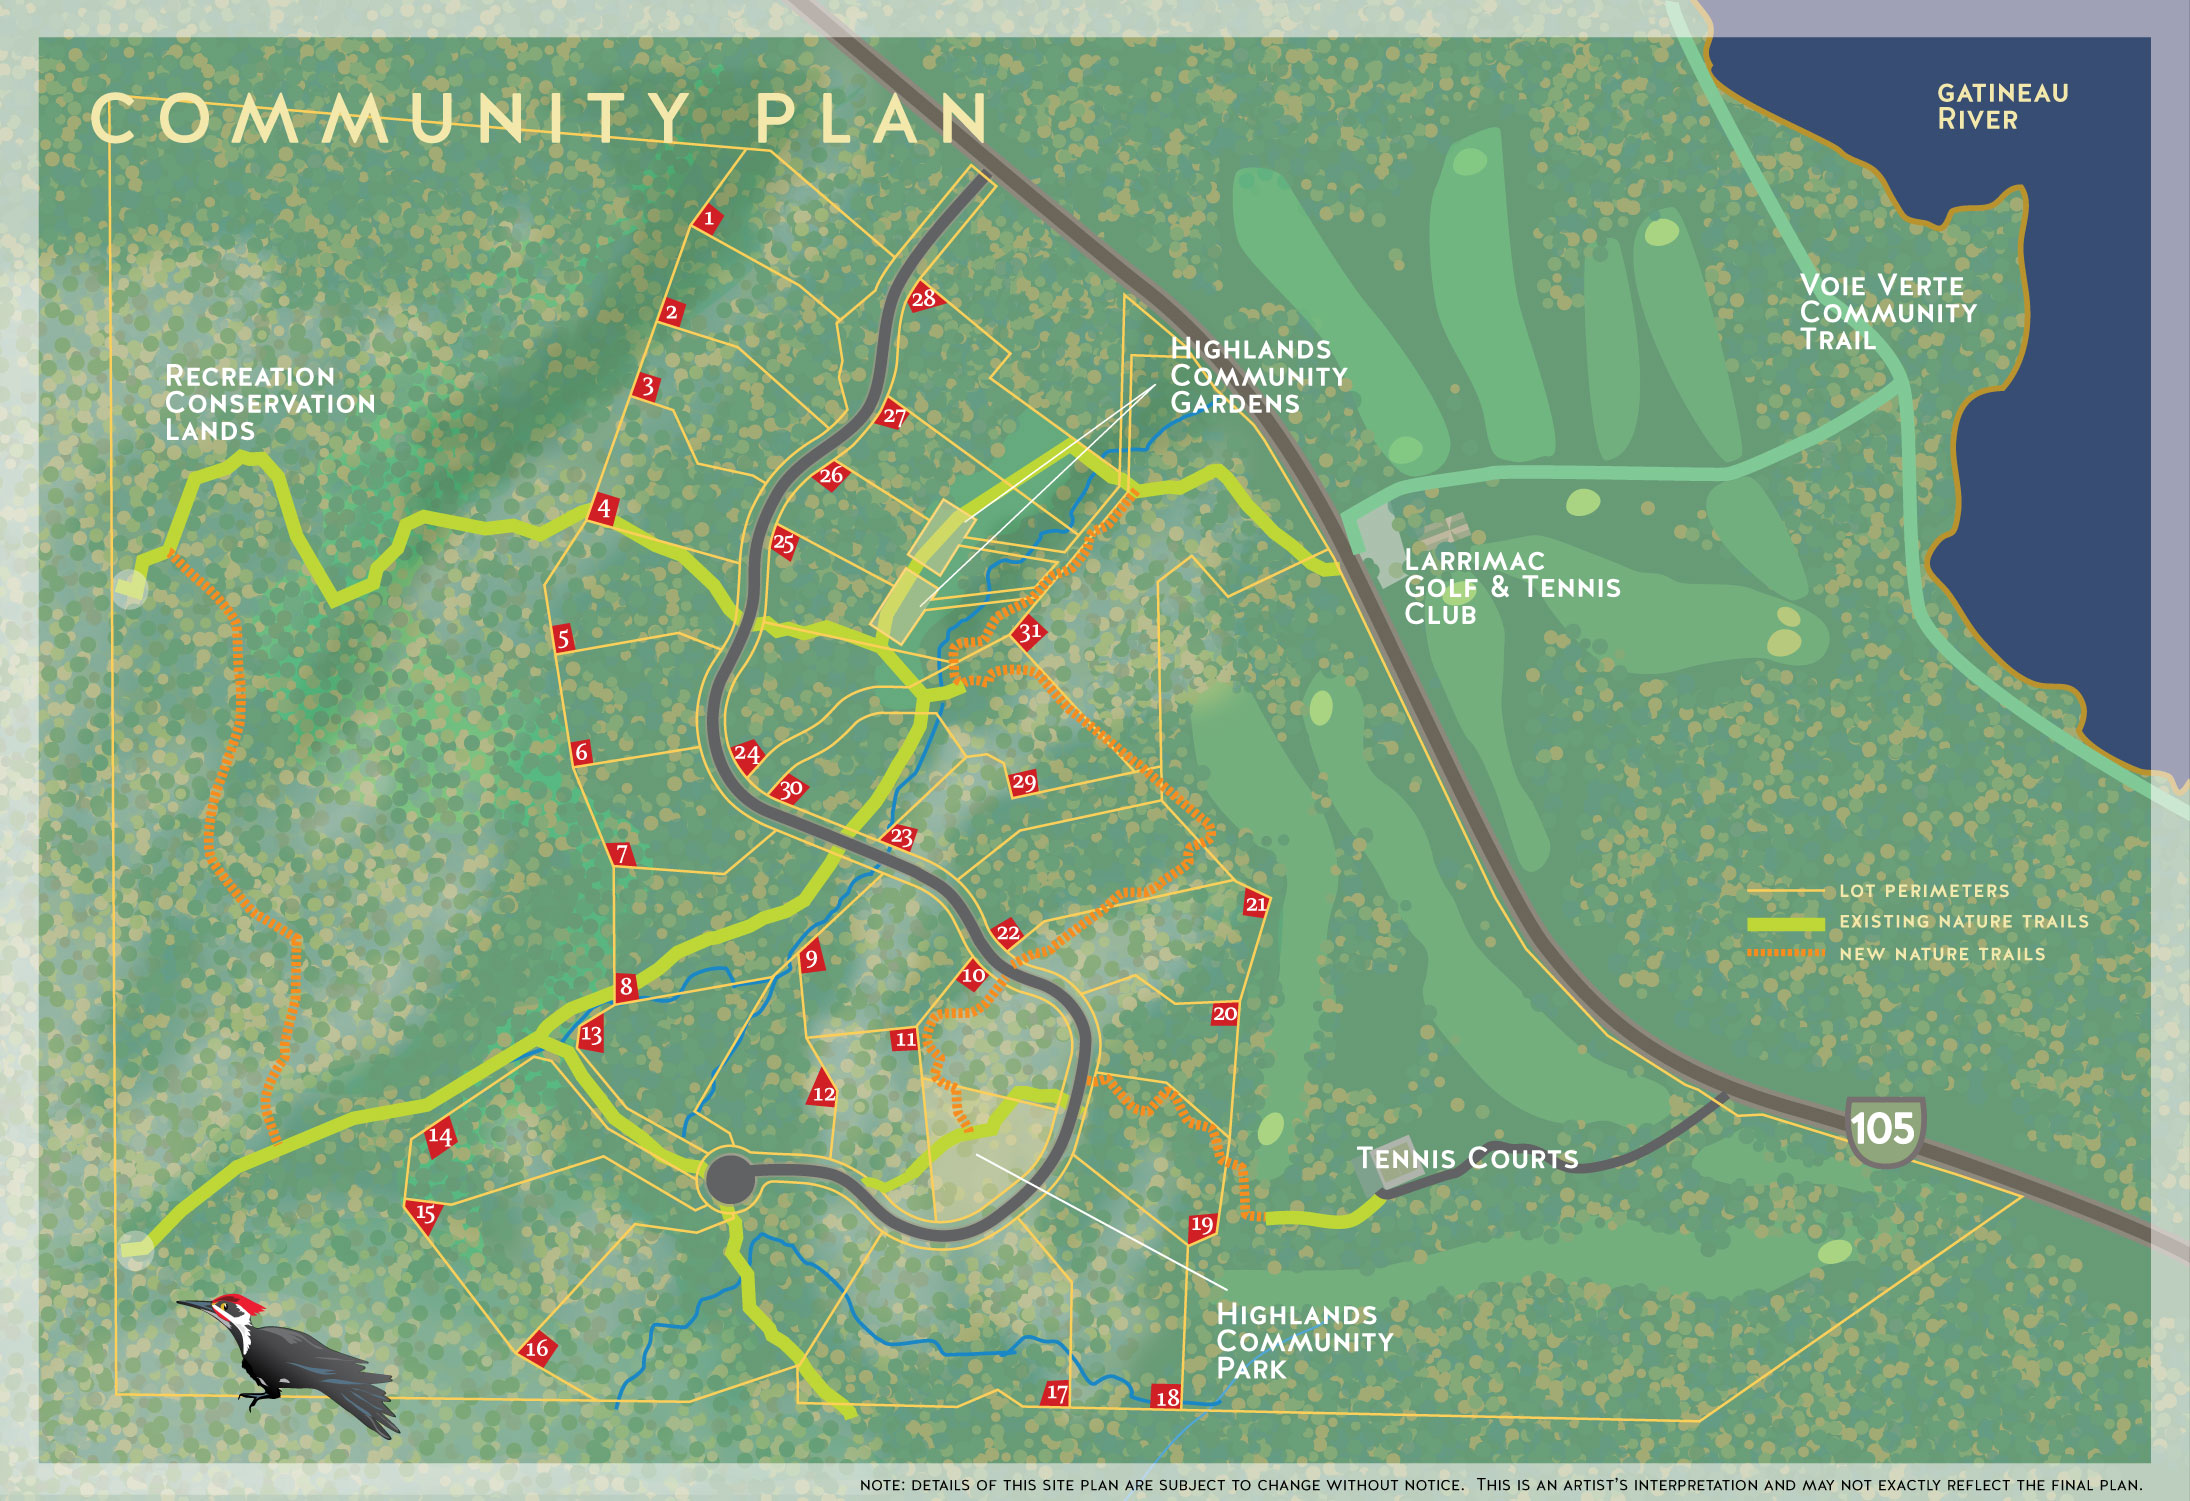 Community Plan Chelsea Highlands